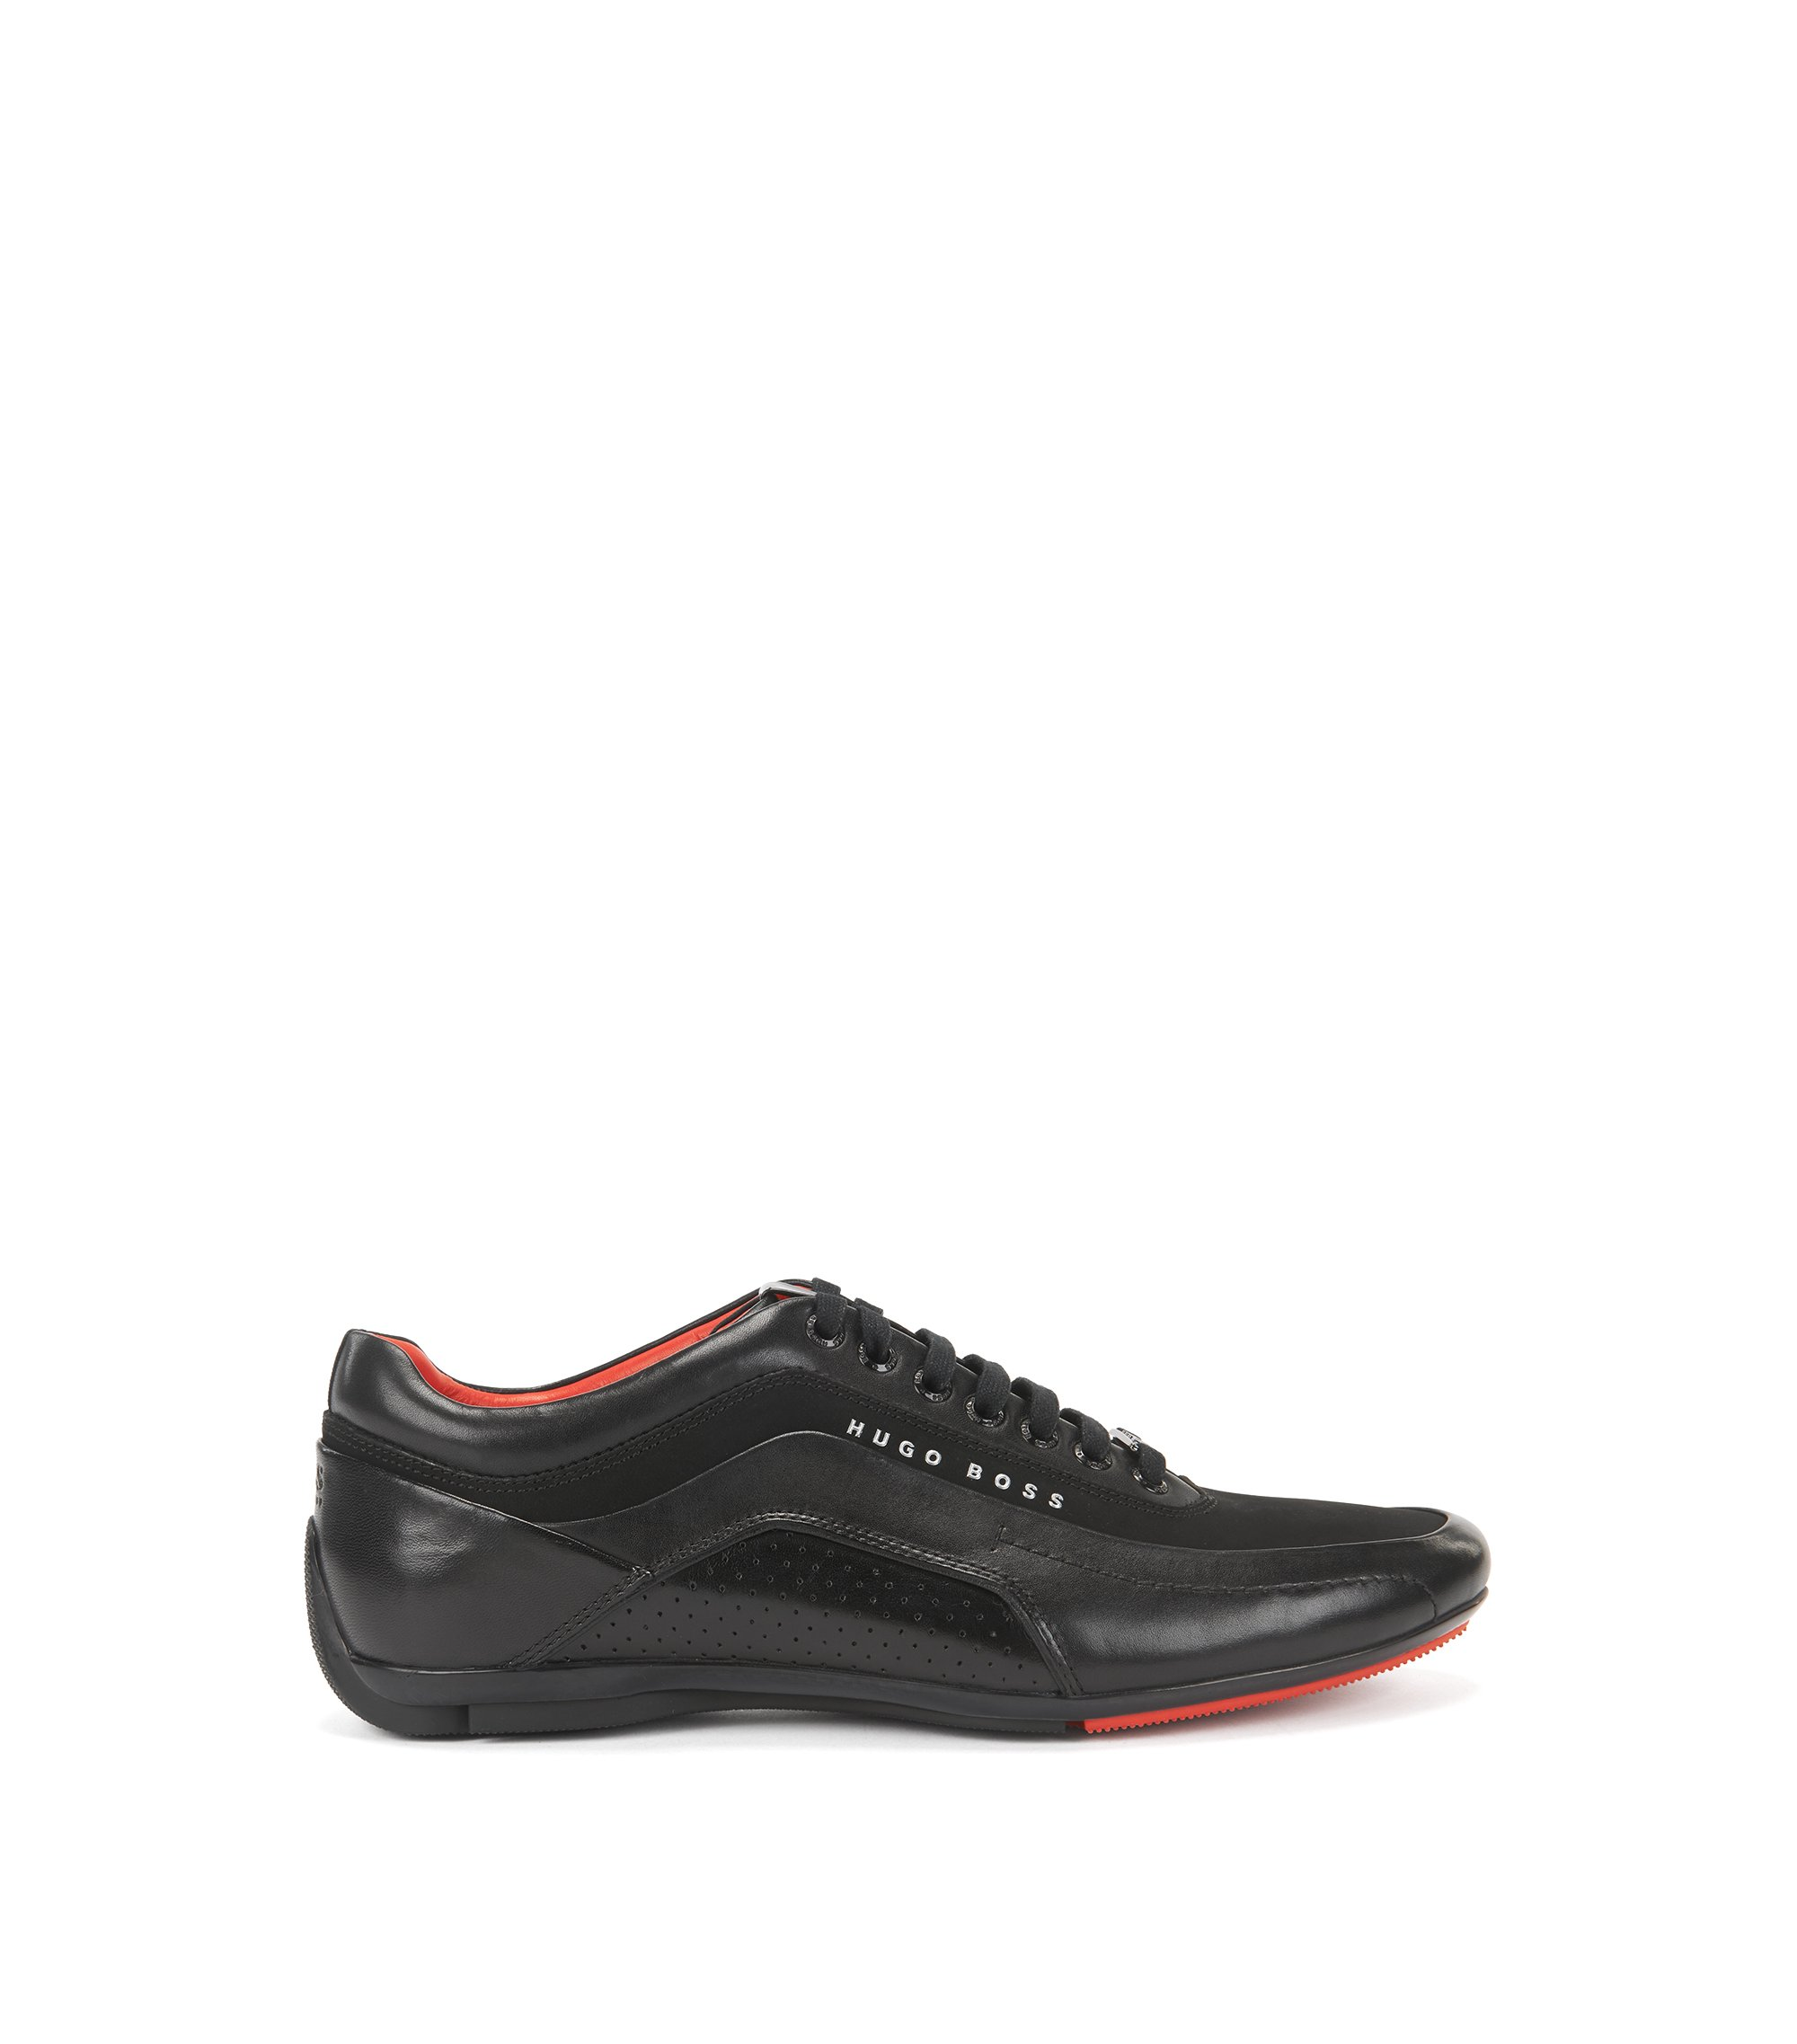 Textured Leather Sneaker | HB Racing, Black